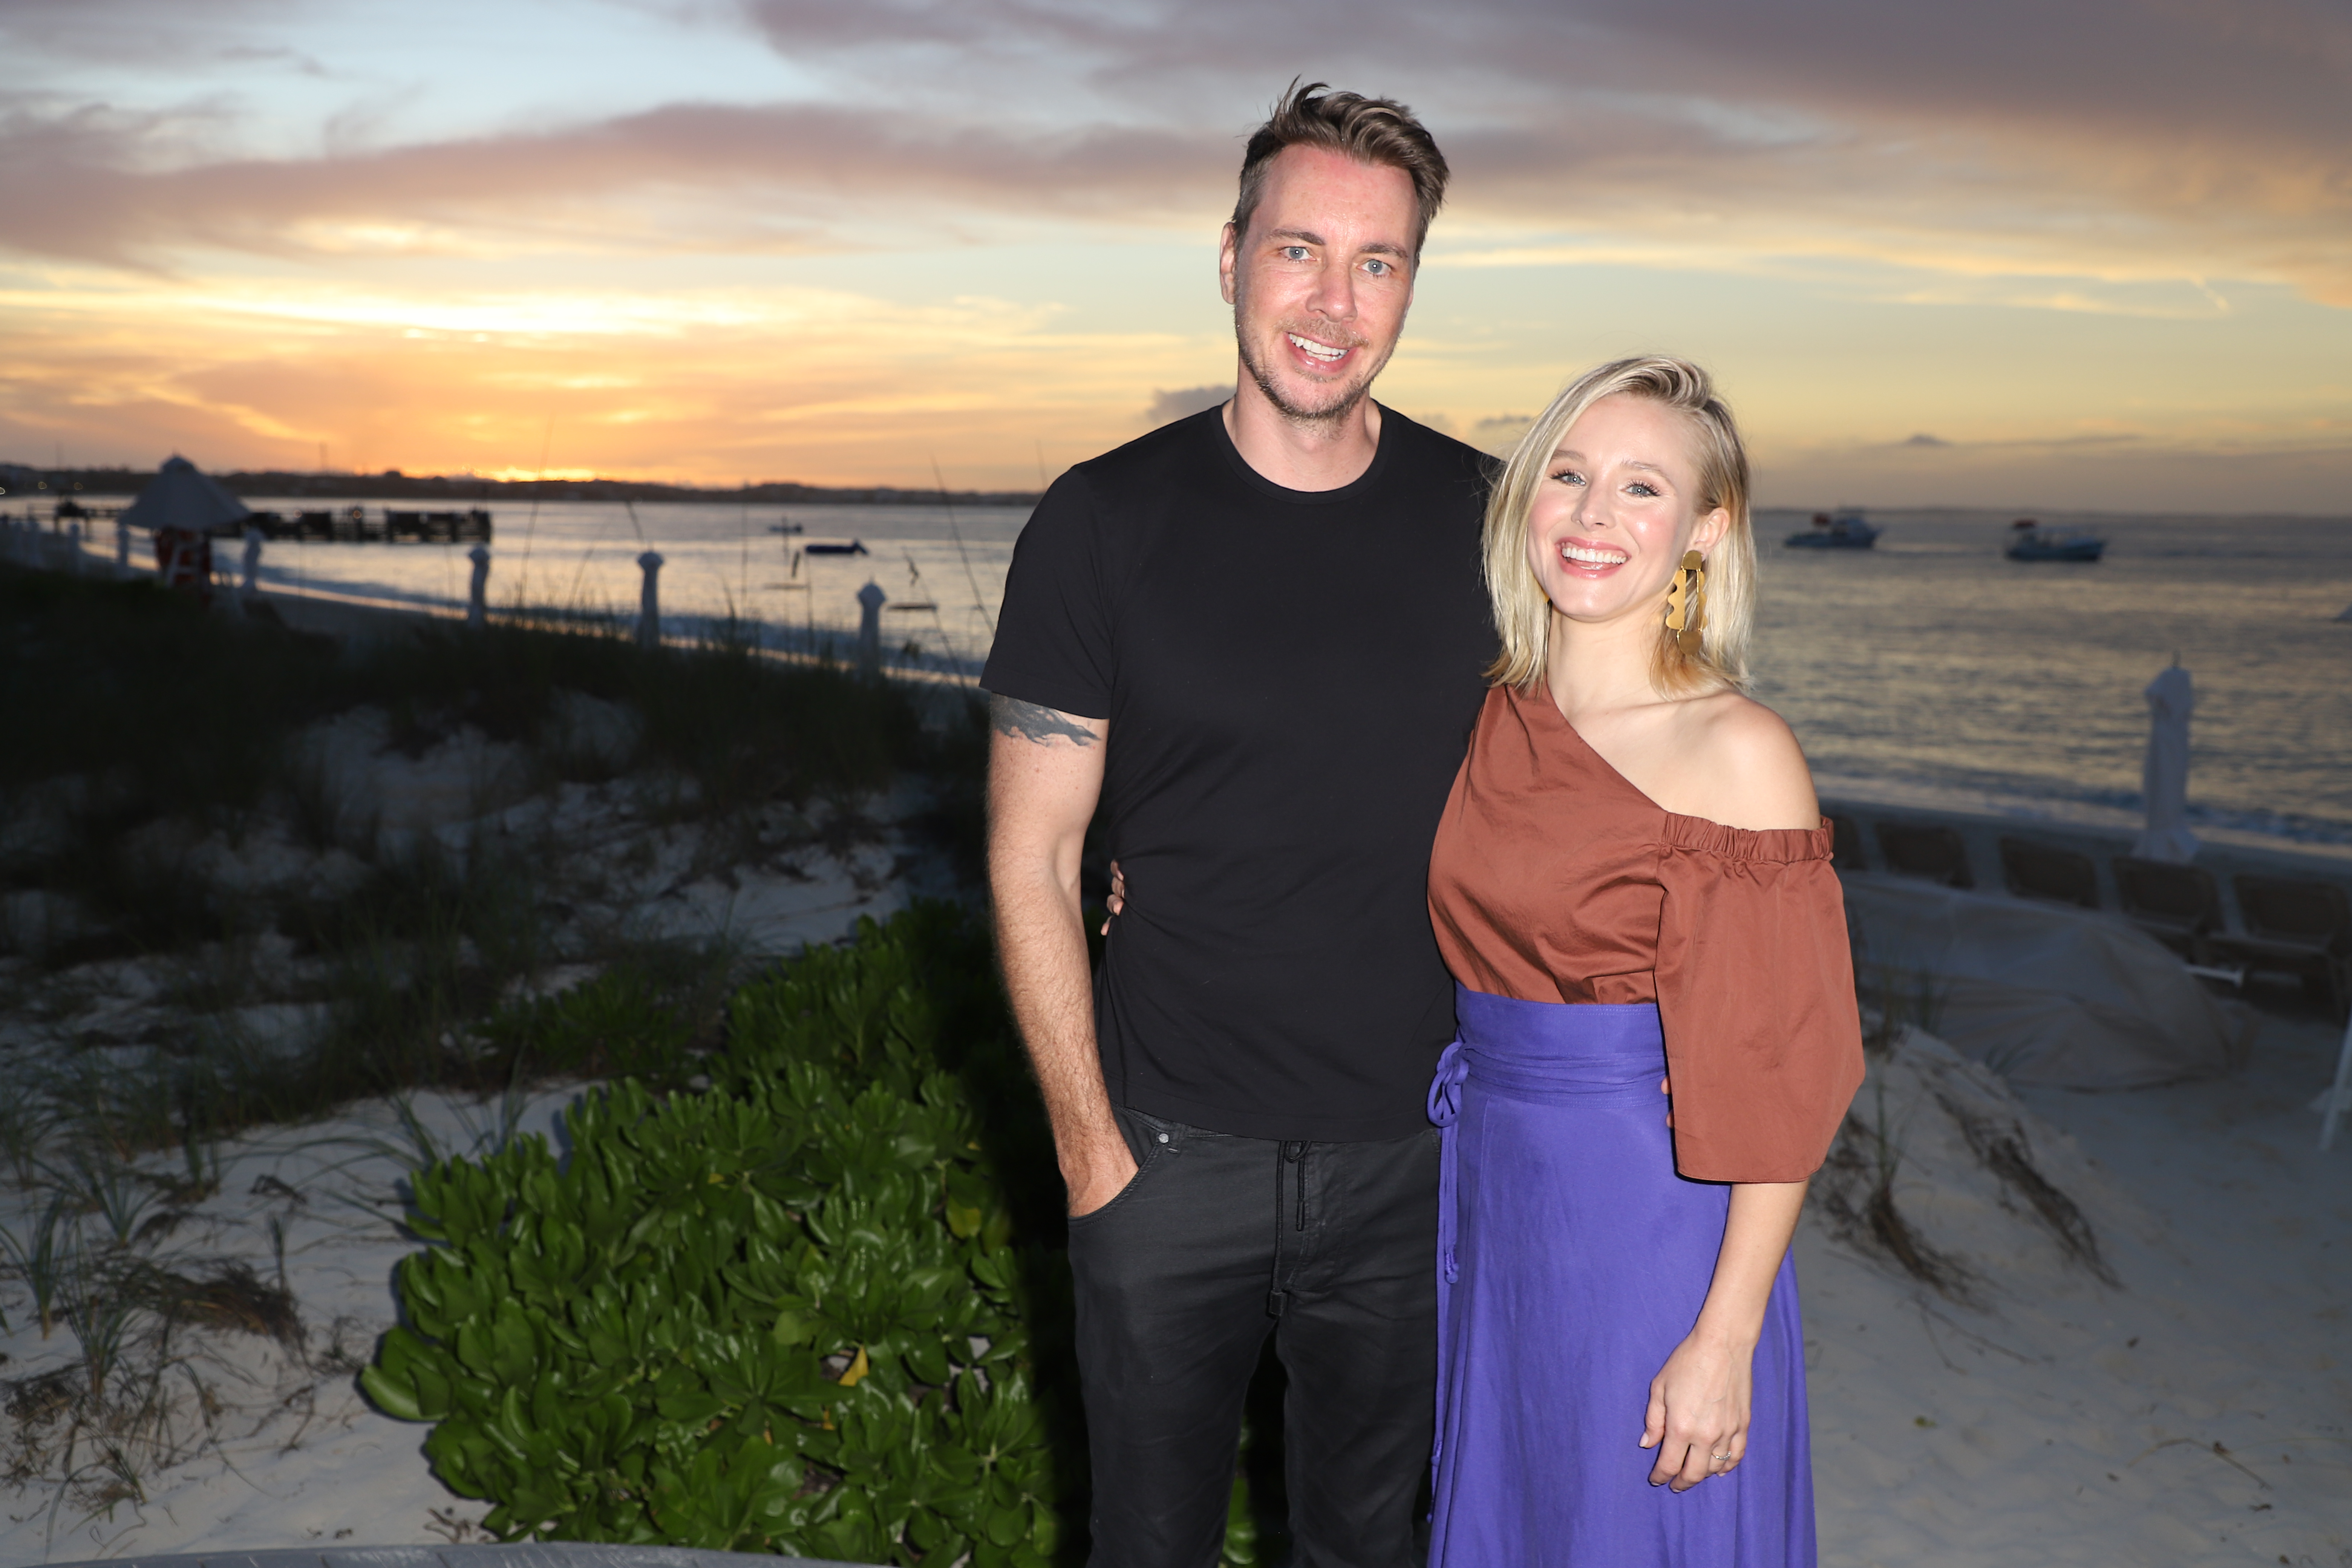 This is how Kristen Bell and Dax Shepard keep their outrage in check